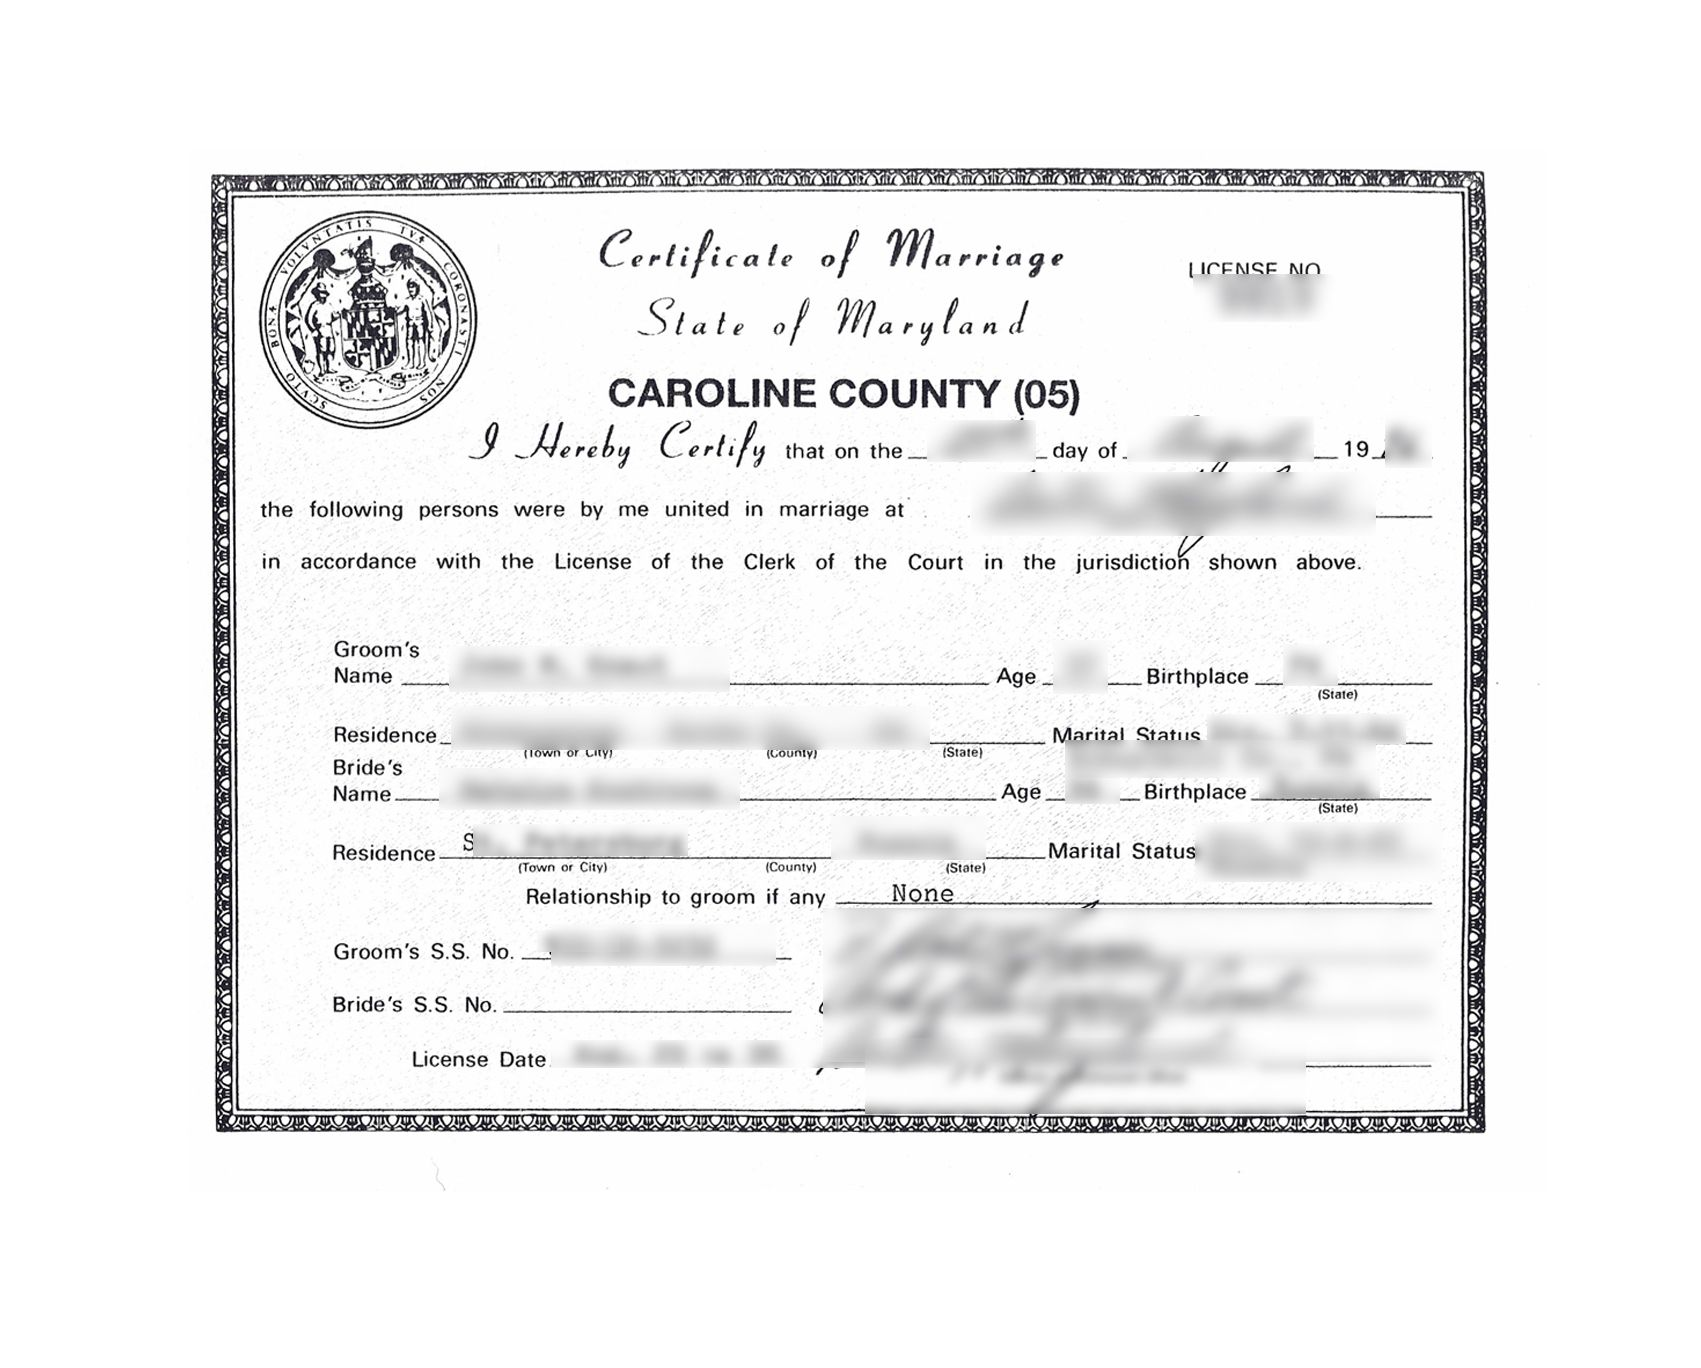 Caroline County State Of Maryland Certificate Of Marriage Non